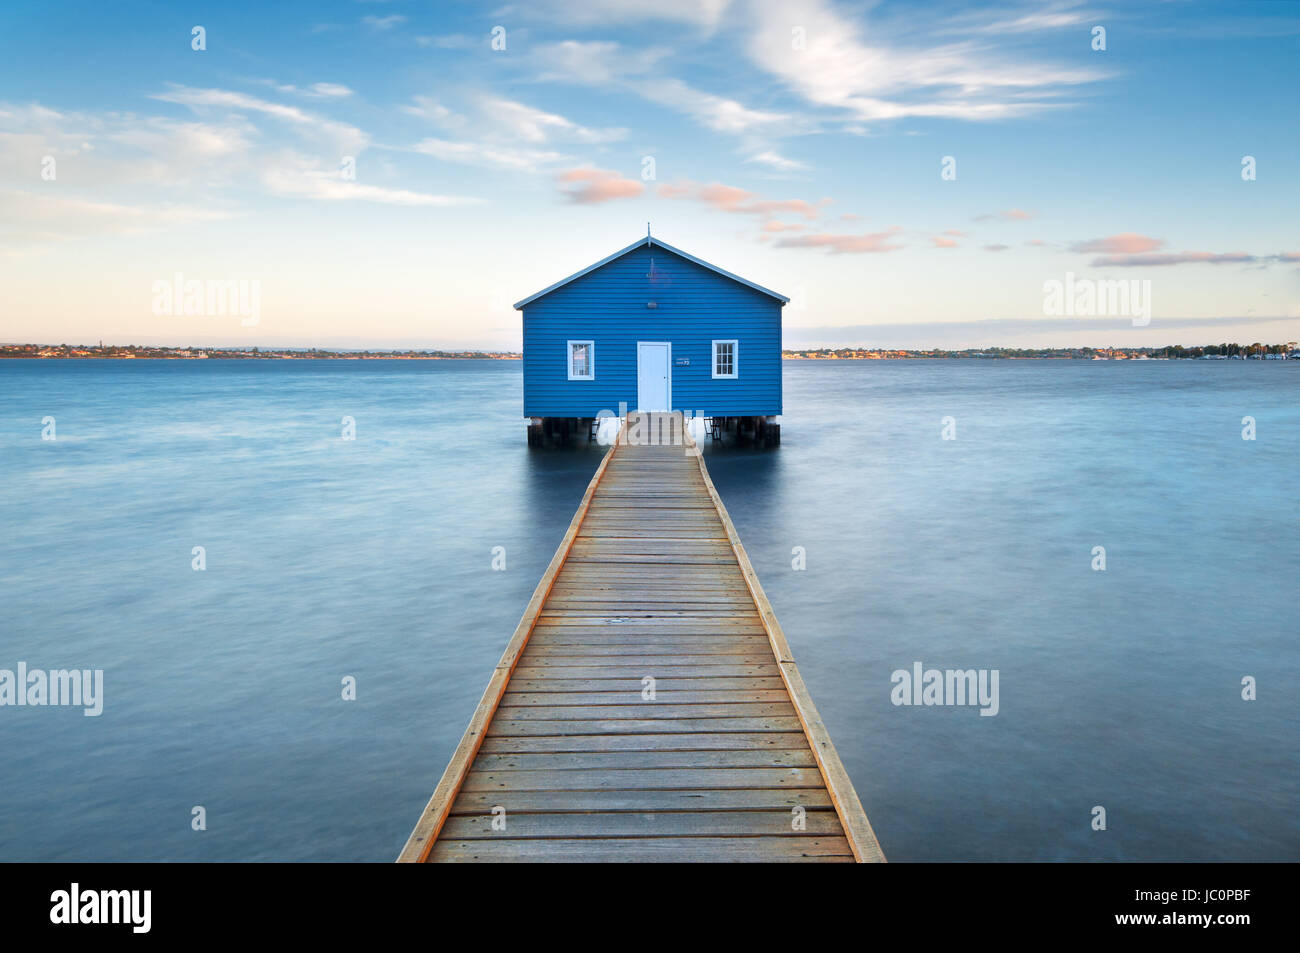 Famoso Borde Crawley Boatshed en Perth Matilda's Bay. Imagen De Stock